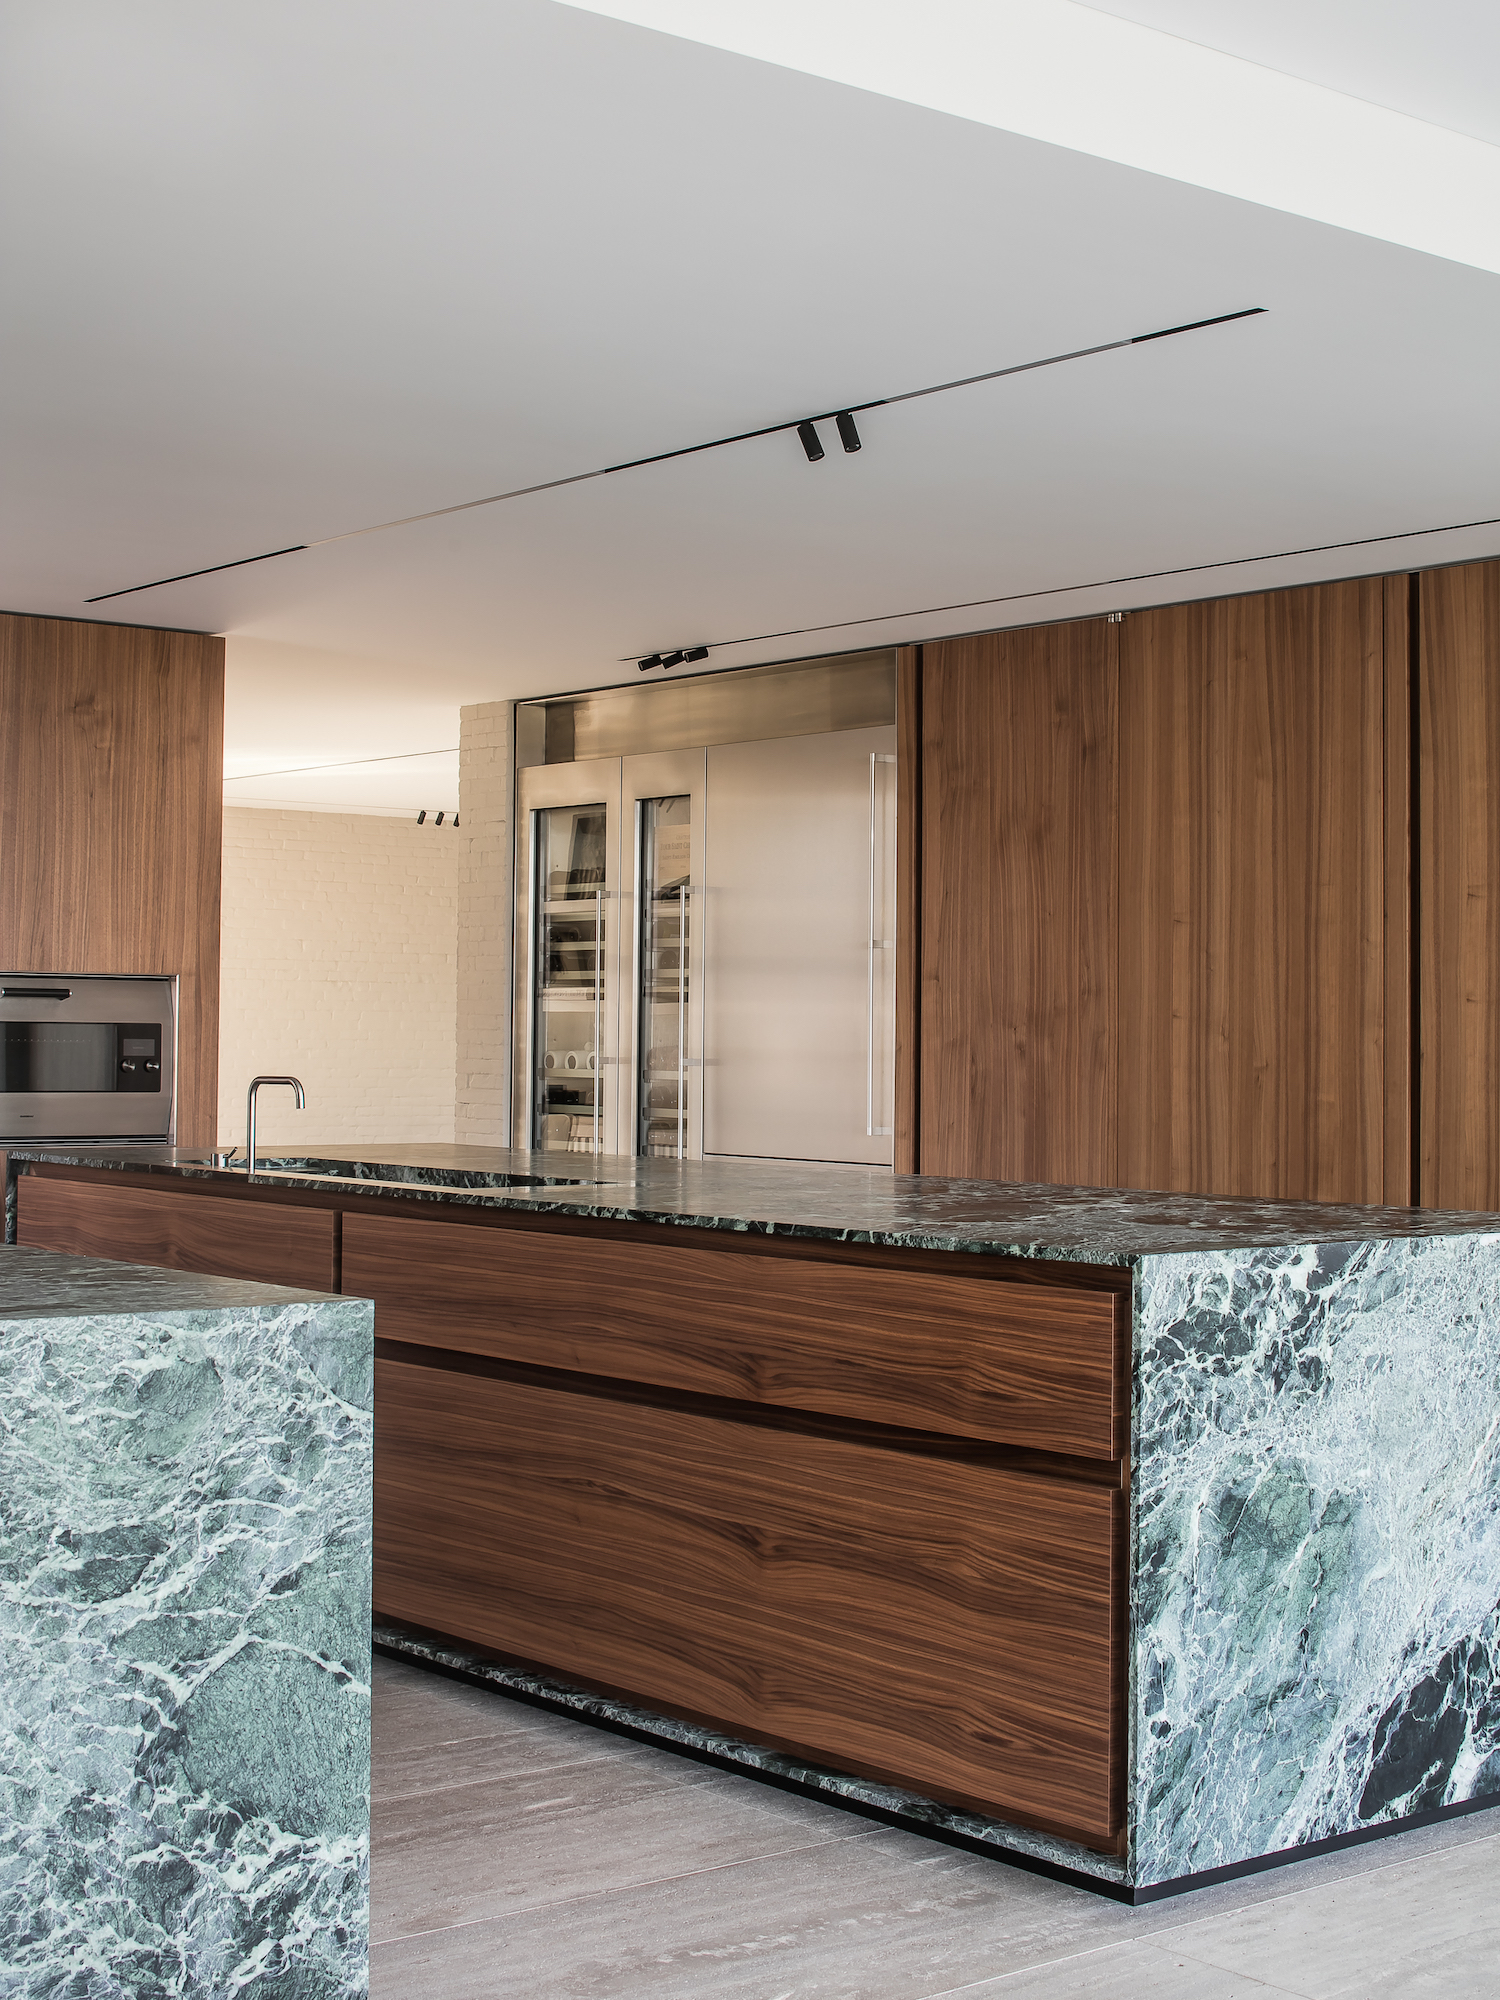 est living dejaeger interieur architecten belgian kitchens 2